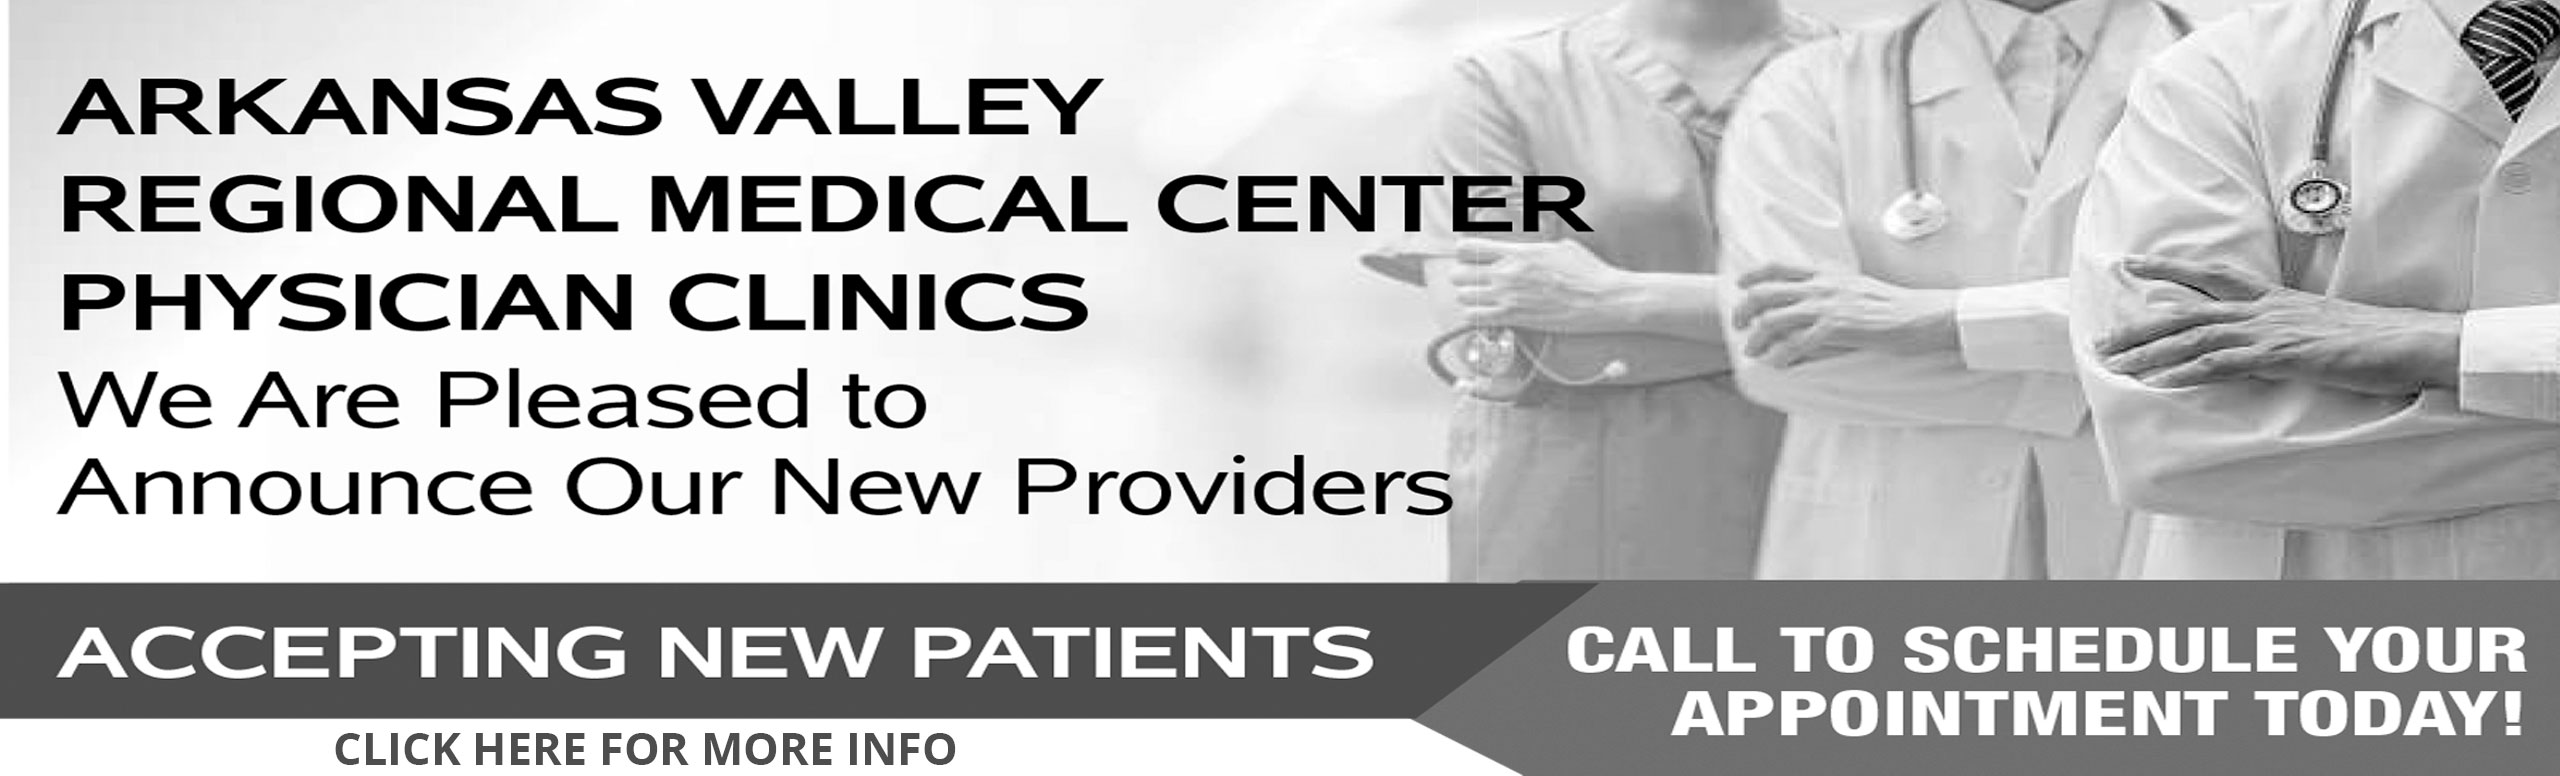 Arkansas Valley Regional Medical Center Physician center physician clinics. We are pleased to announce our new providers.   Call to schedule your appointment today!  Click here for more information